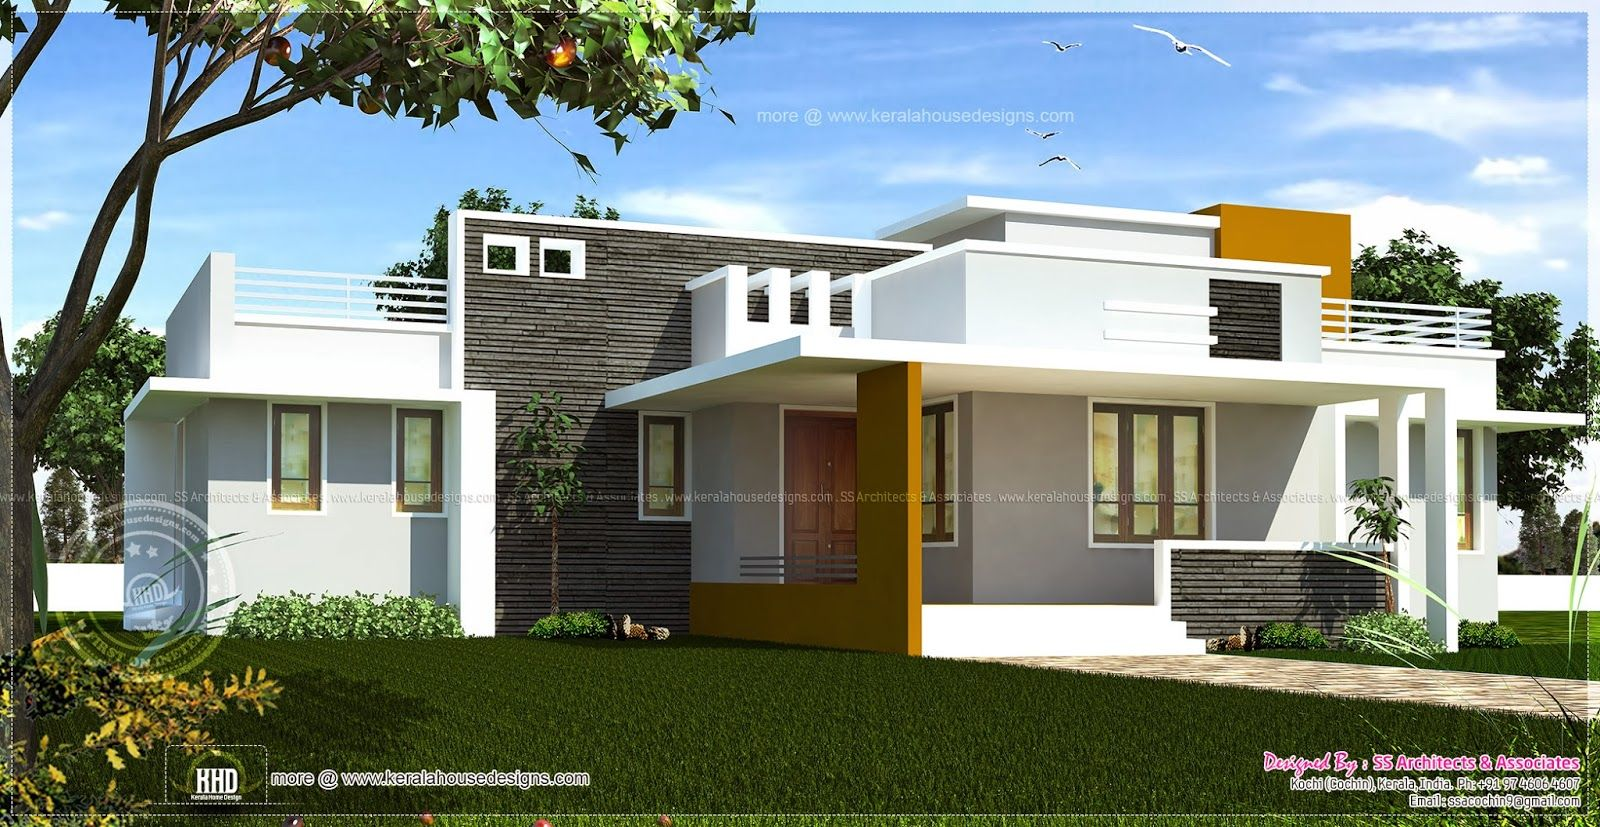 Excellent single home designs single floor contemporary for One floor contemporary house design